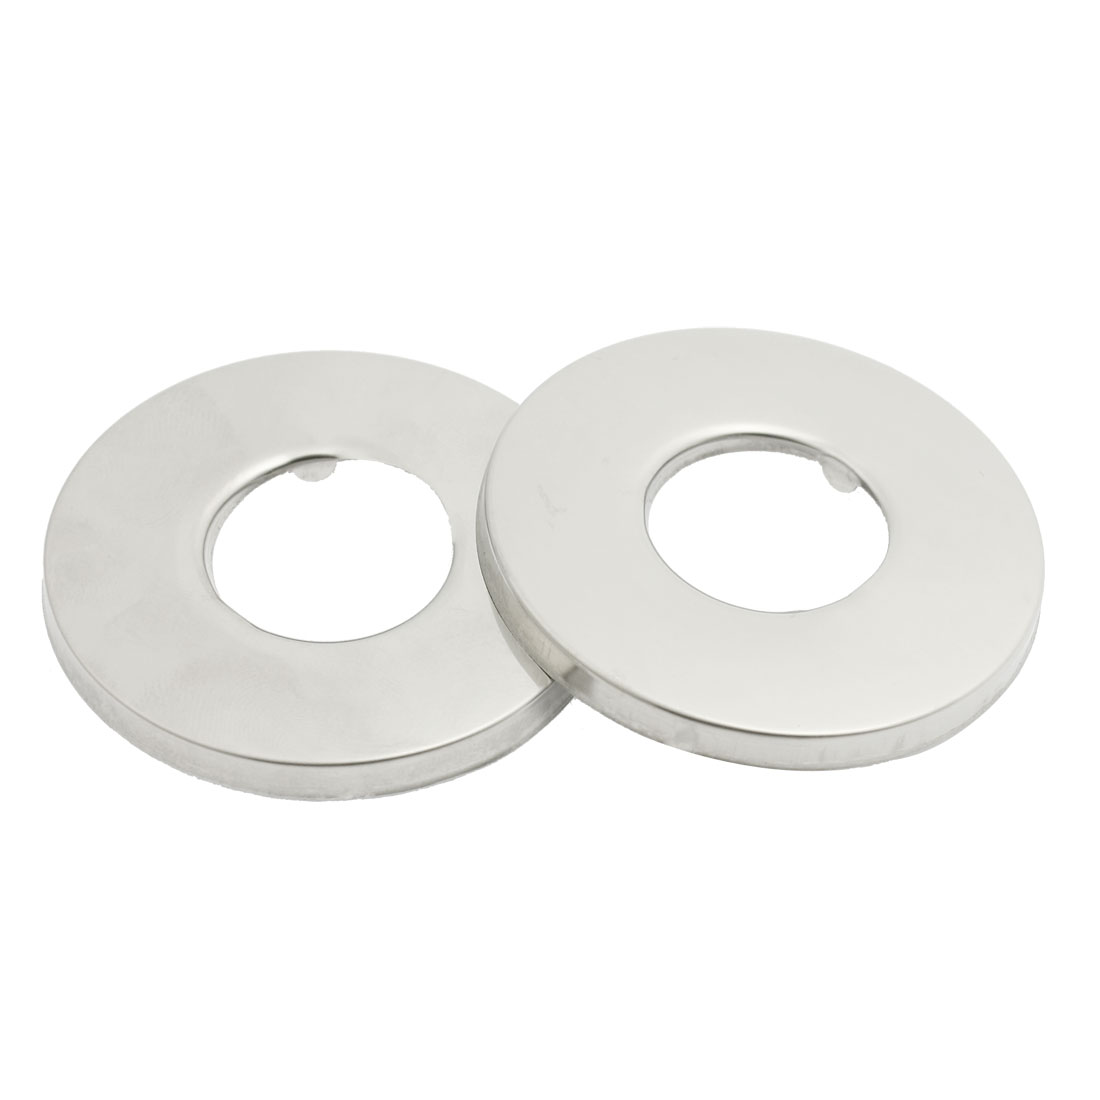 2 Pieces Stainless Steel Decorative Round Cover Cap for Angle Valve